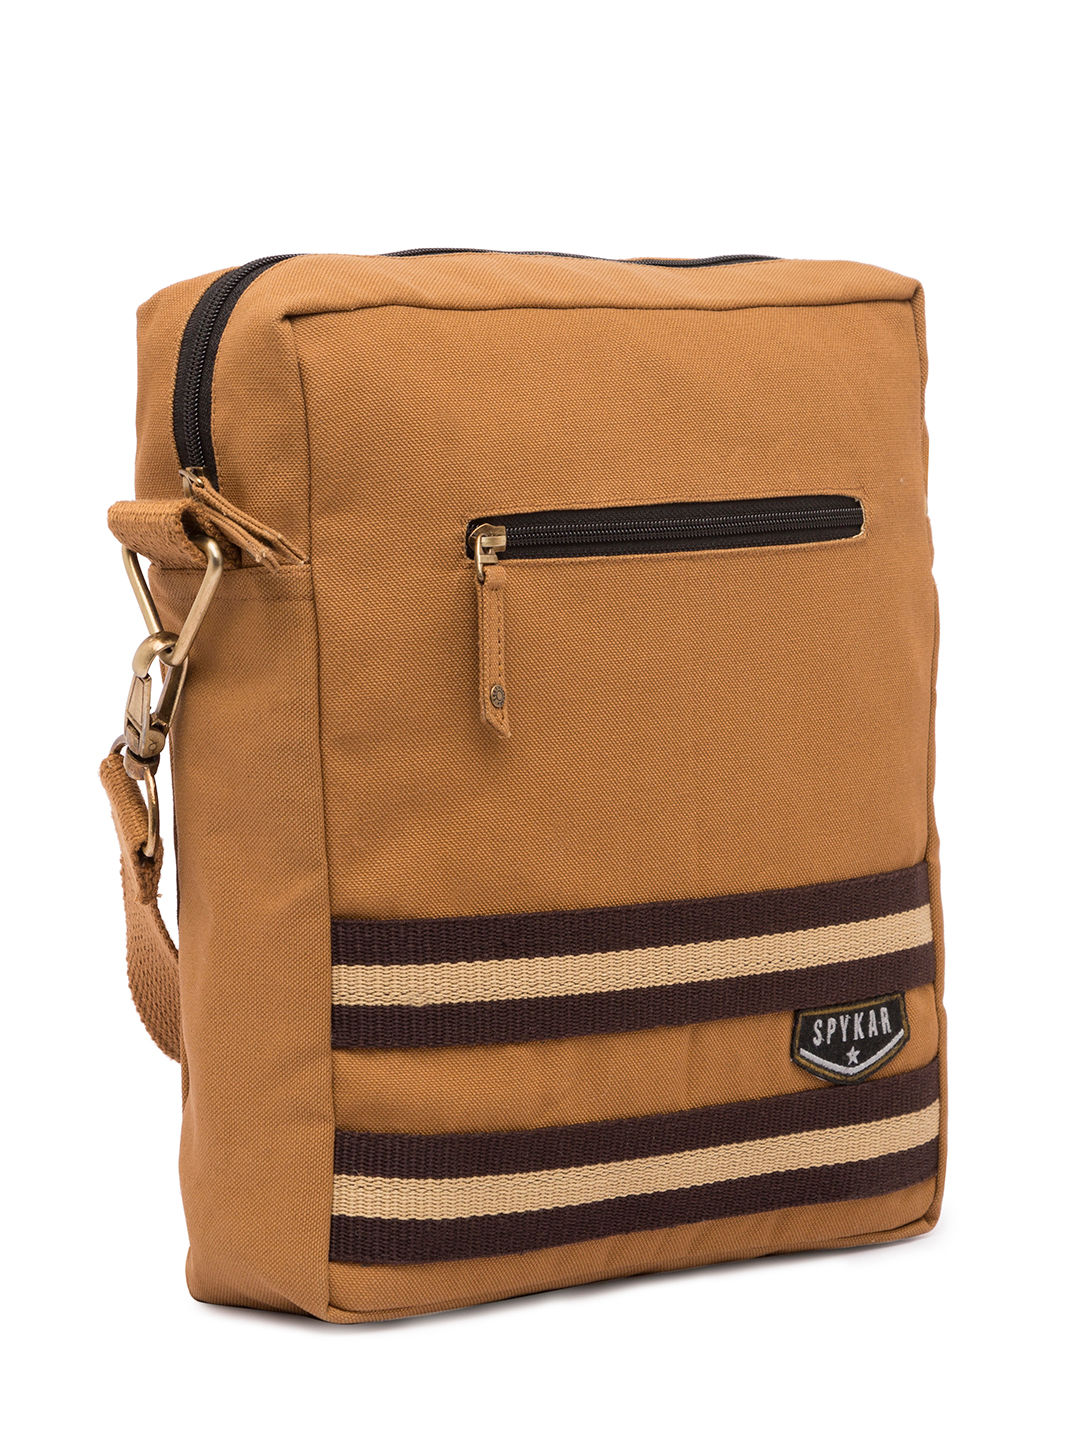 Spykar Light Brown Canvas Messenger Bag